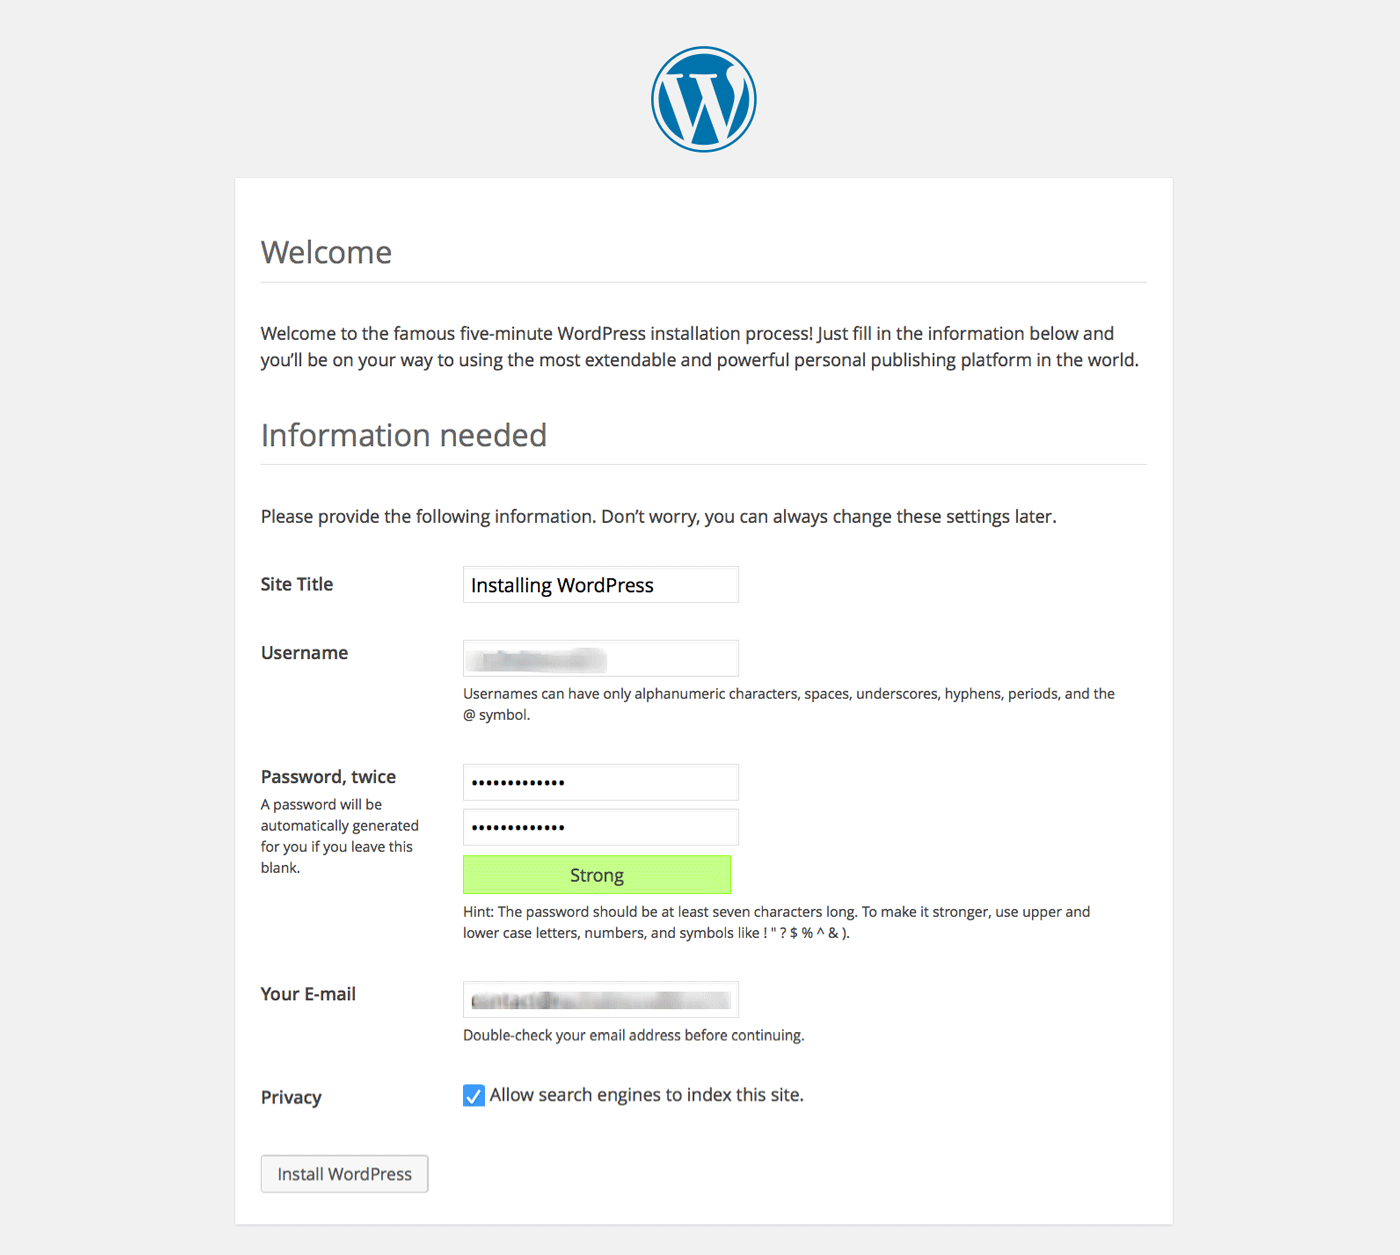 Installing WordPress - site details screen